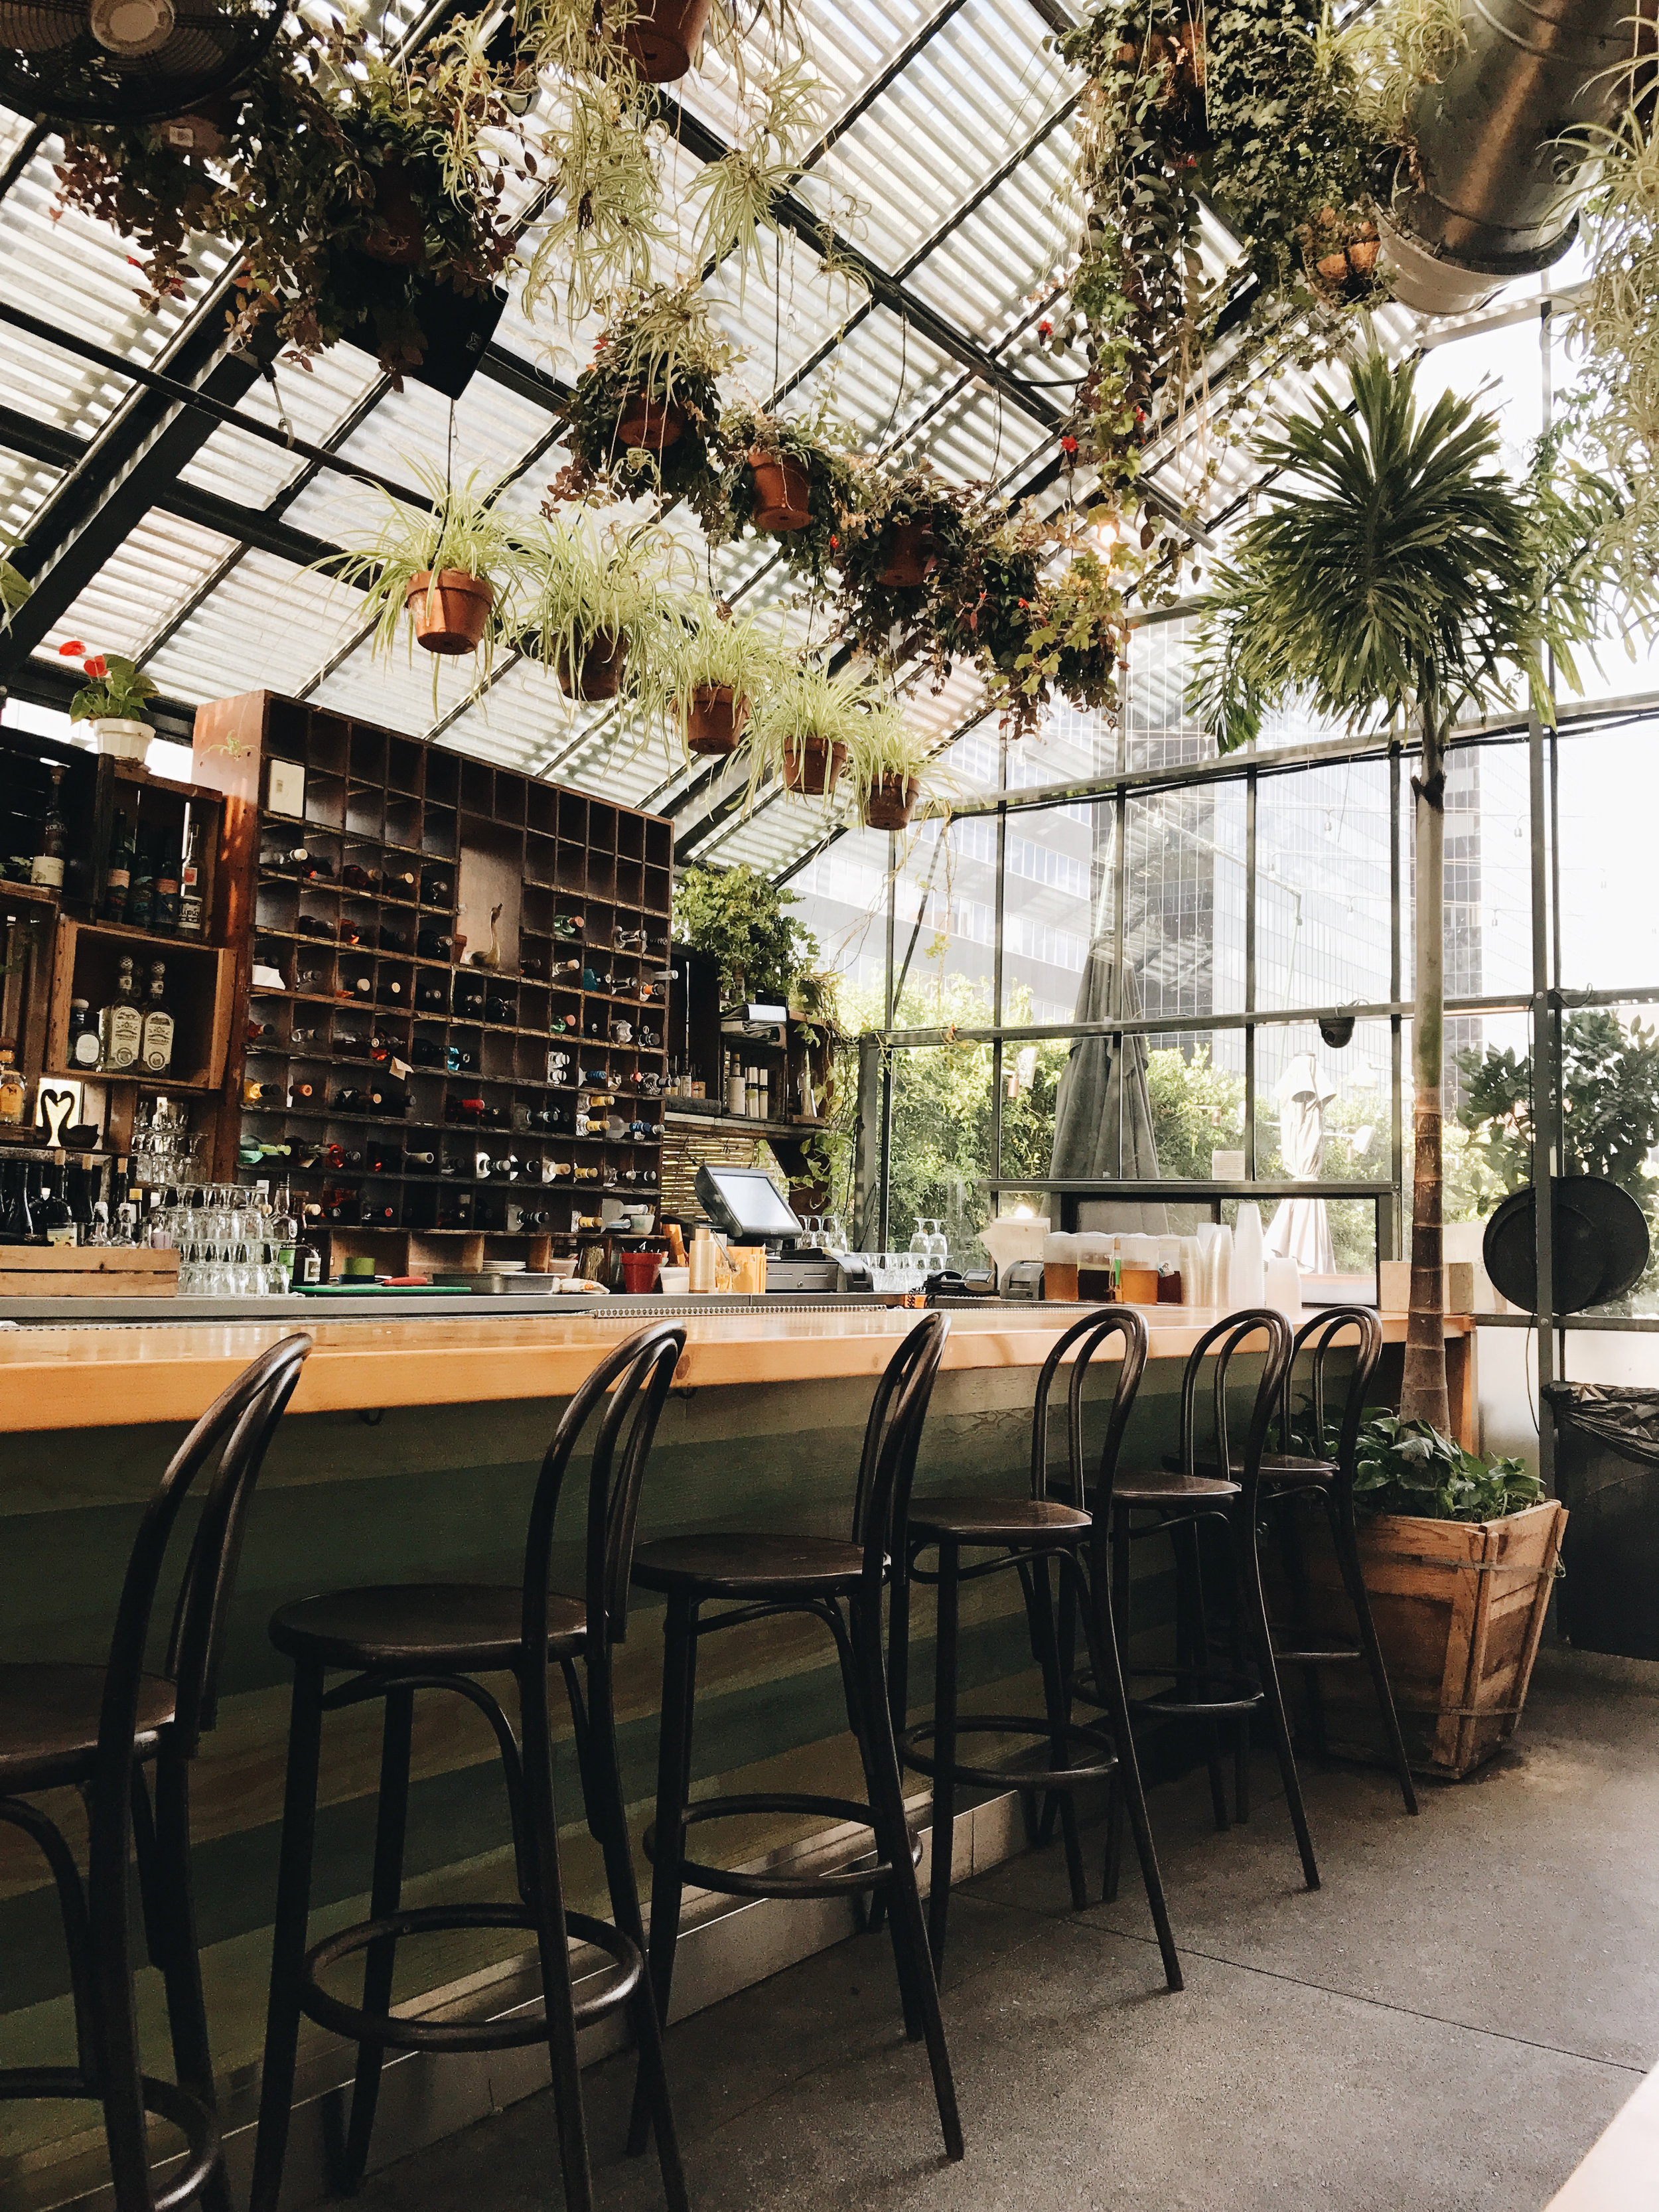 Commissary at The Line was beautiful. It's a restaurant inside a greenhouse and the food!! Delicious.